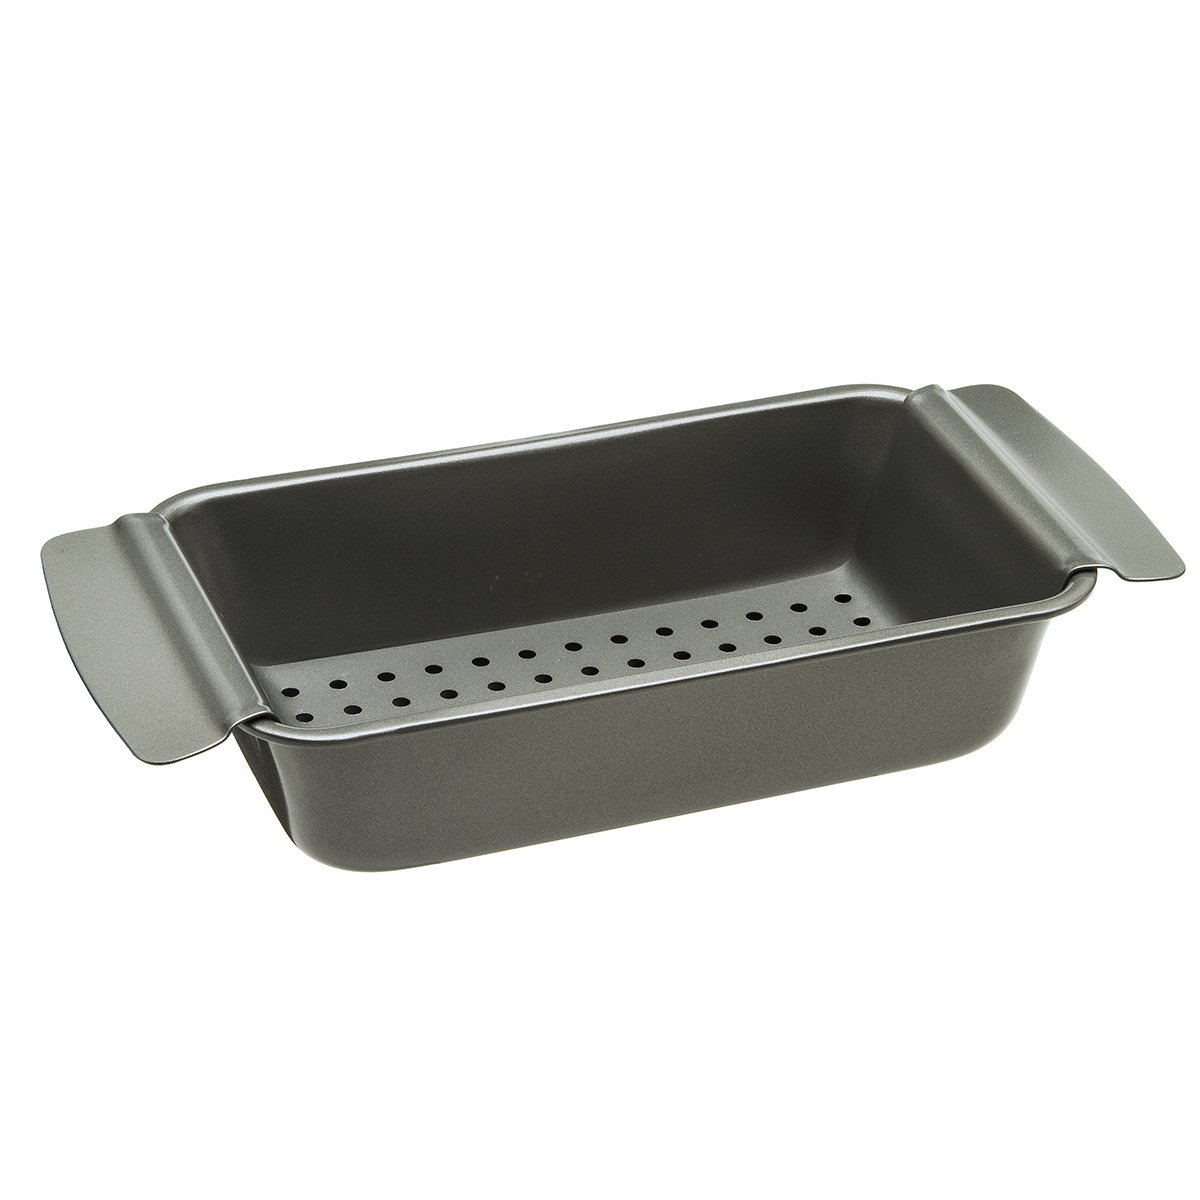 "Ecolution Bakeins Healthy Meat Loaf Pan Set – Loaf Pan and Perforated Tray – PFOA, BPA, and PTFE Free Non-Stick Coating – Heavy Duty Carbon Steel – Dishwasher Safe – Gray – 9"" x 4.875"" x 2.5"" by Ecolution"